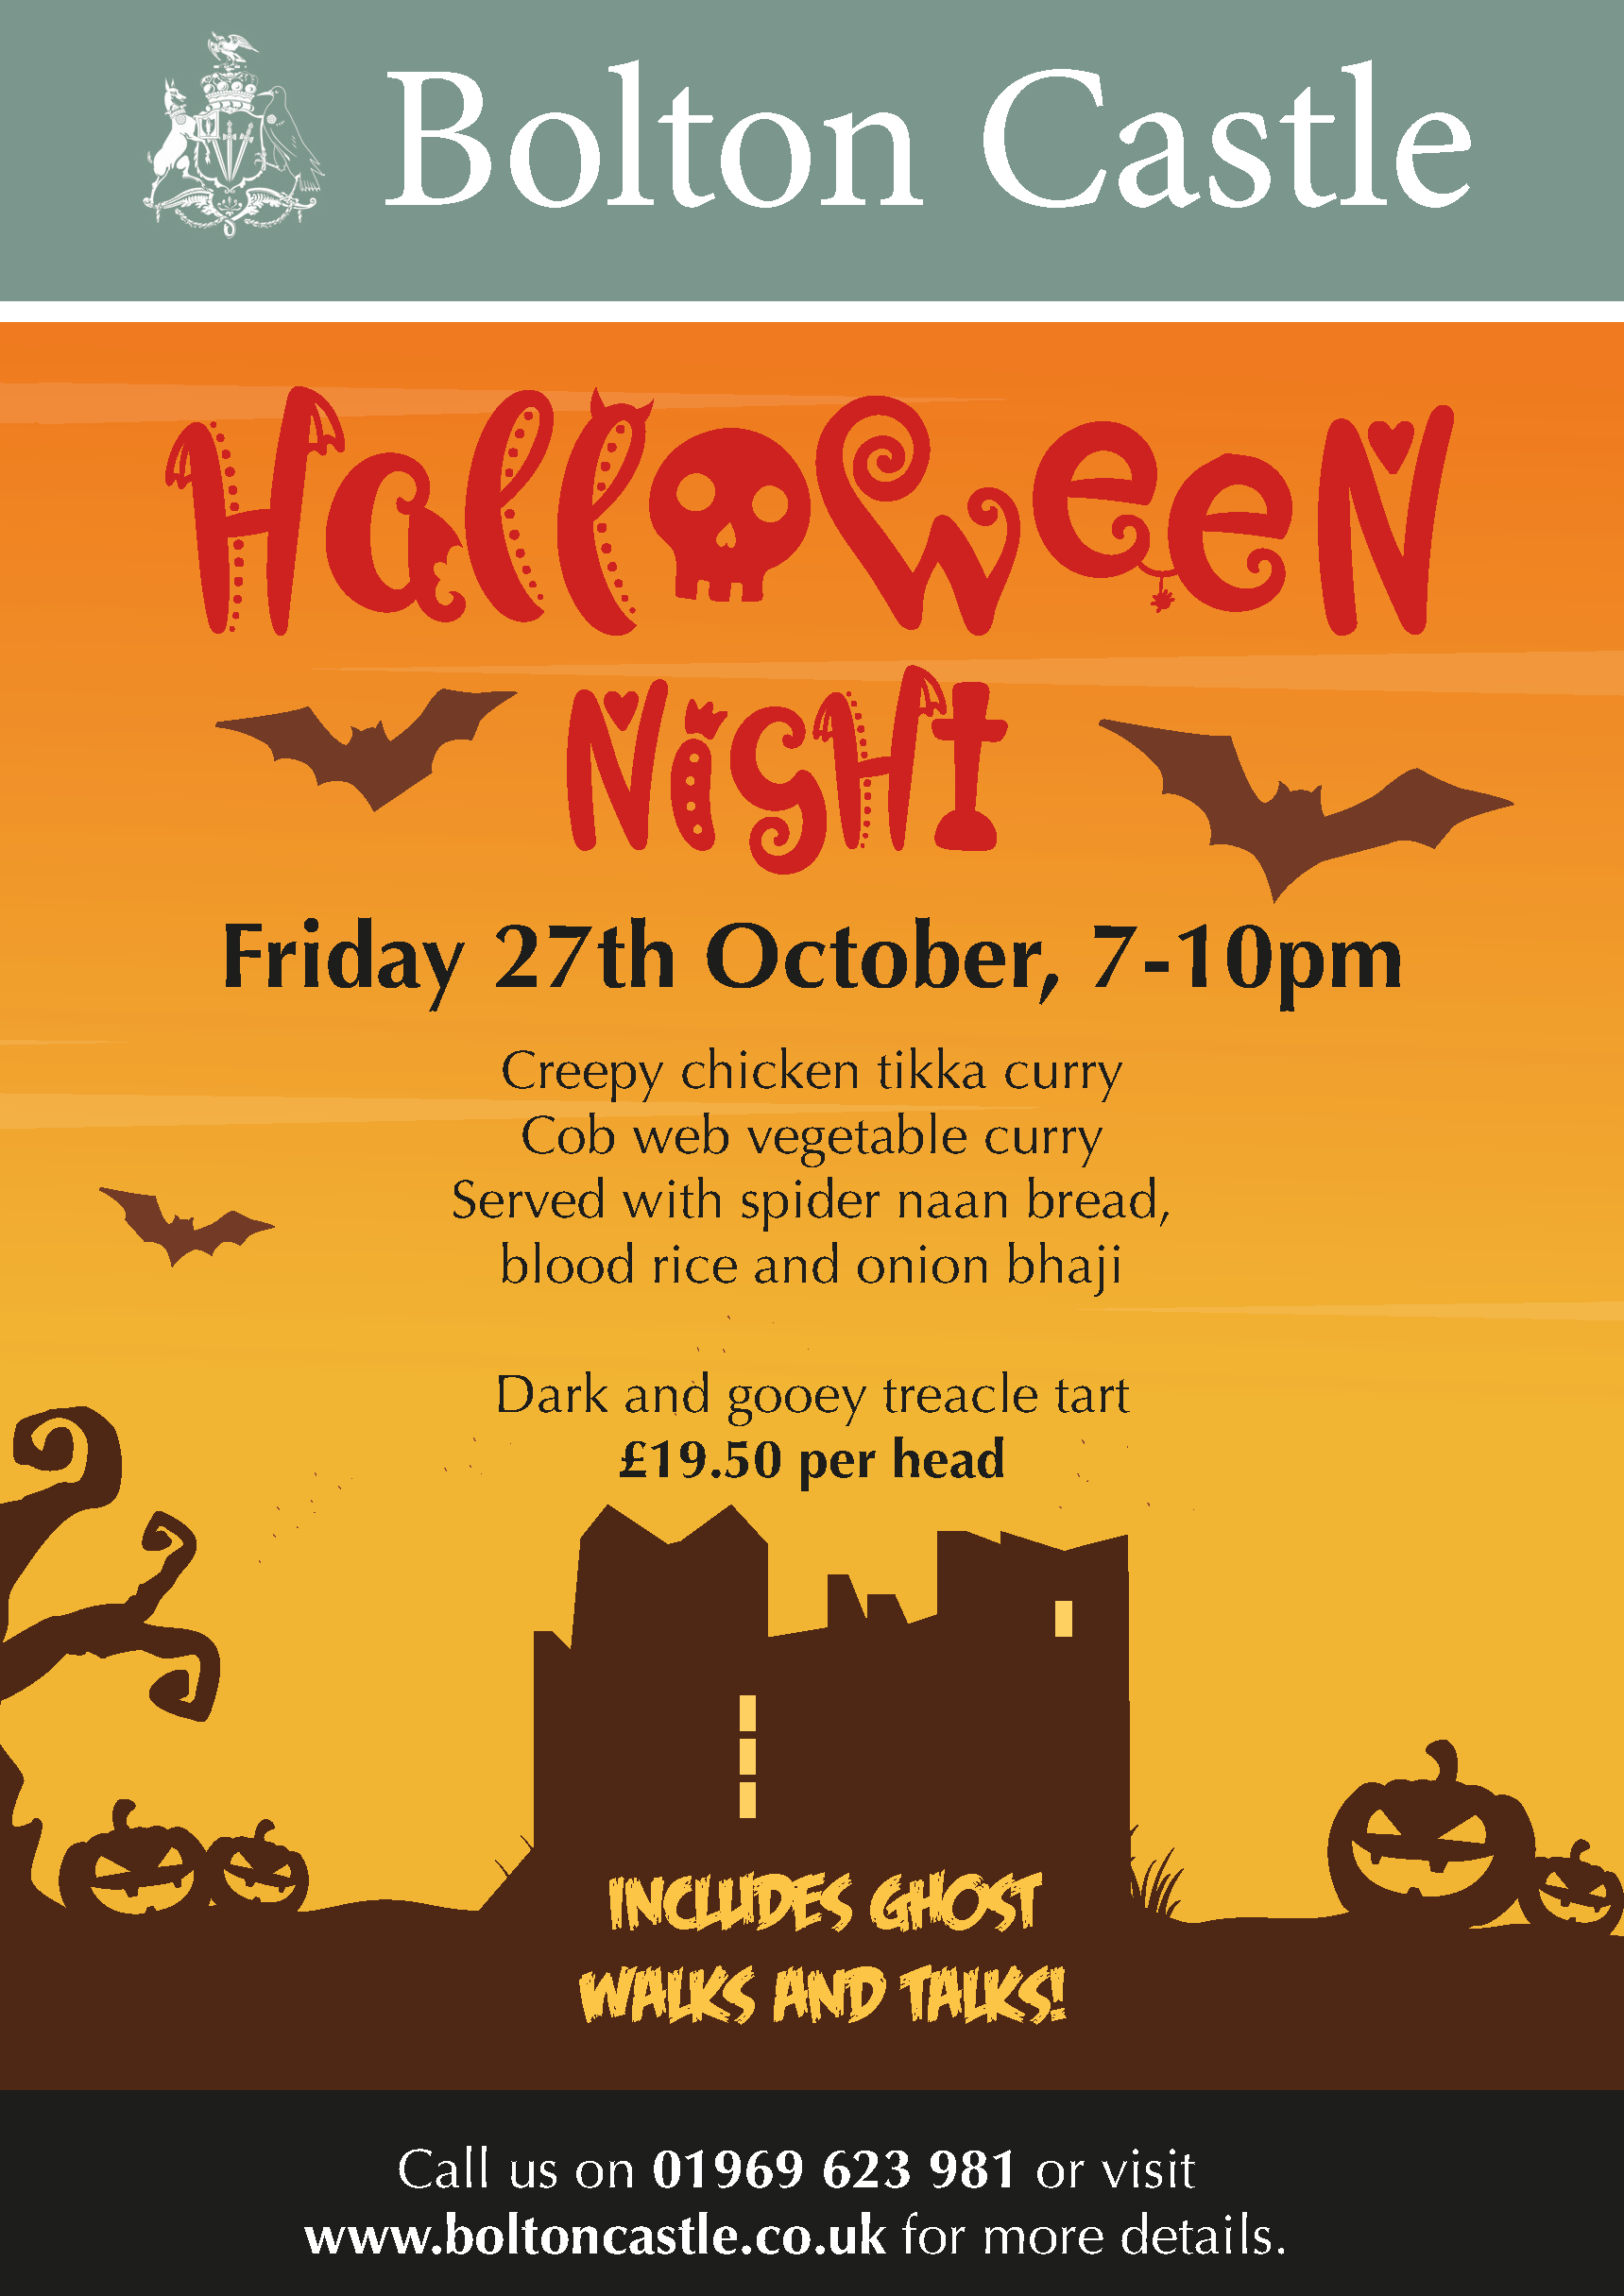 Bolton Castle Halloween Night